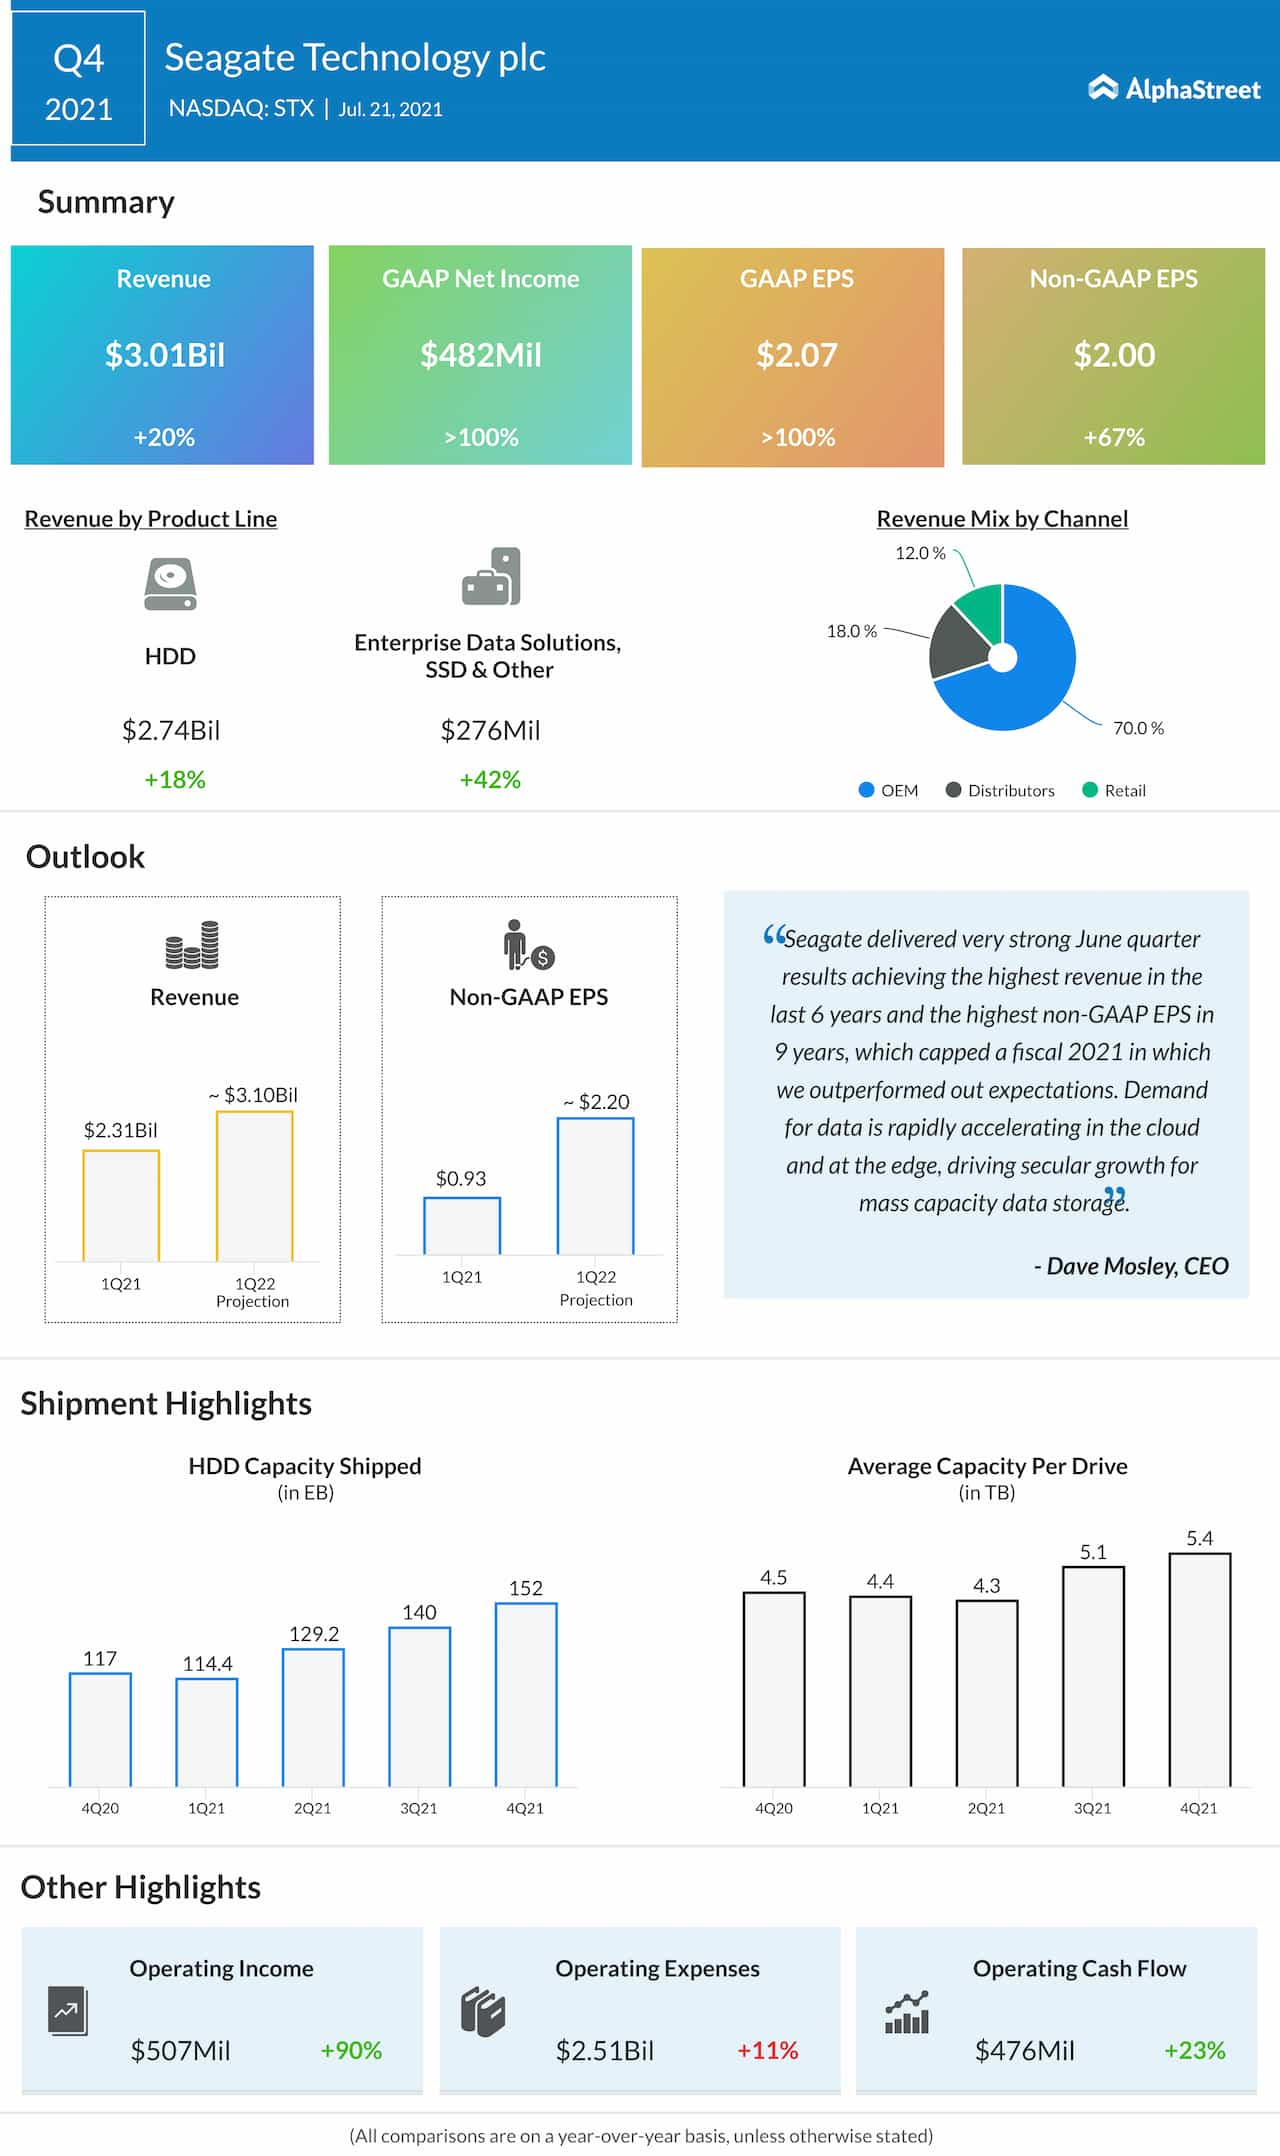 seagate Q4 2021 earnings infographic